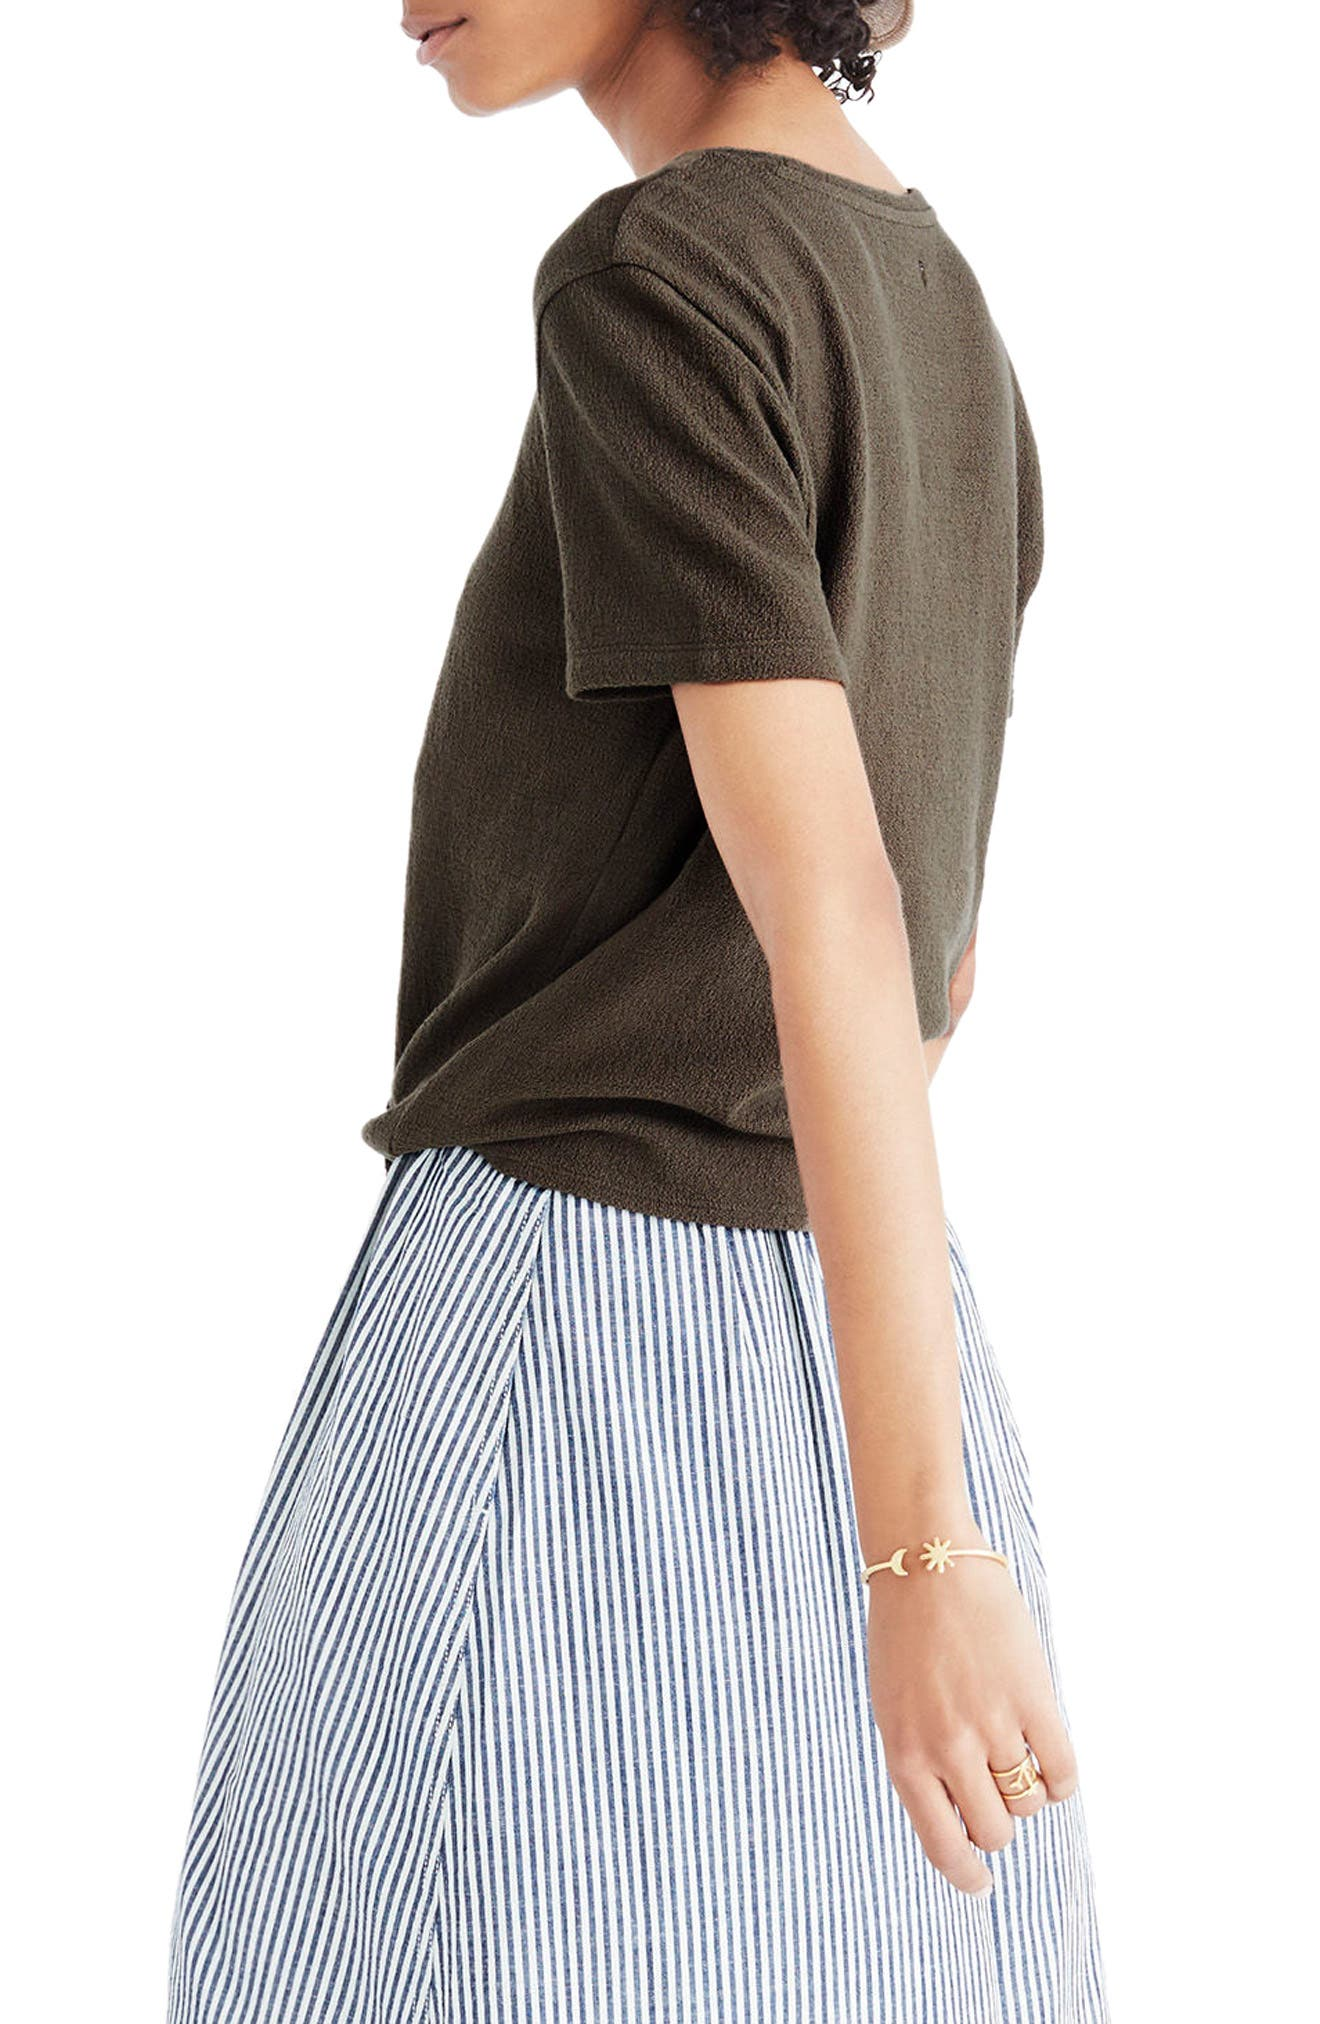 MADEWELL,                             Modern Tie Front Tee,                             Alternate thumbnail 3, color,                             300